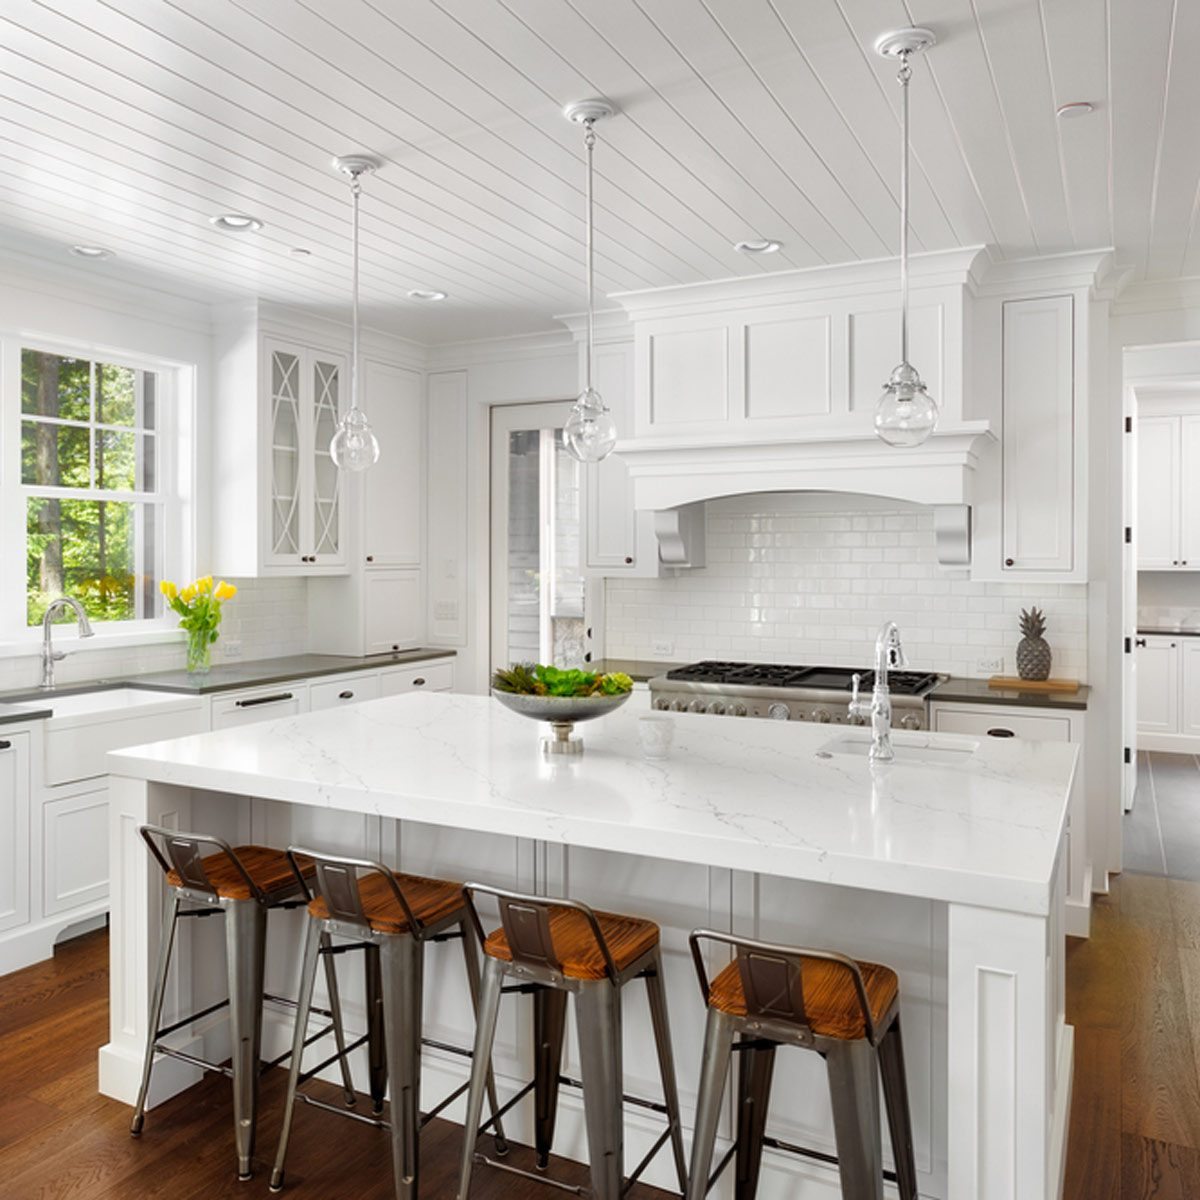 17oct912018_449760910_10 white kitchen island farmhouse style popular kitchen colors